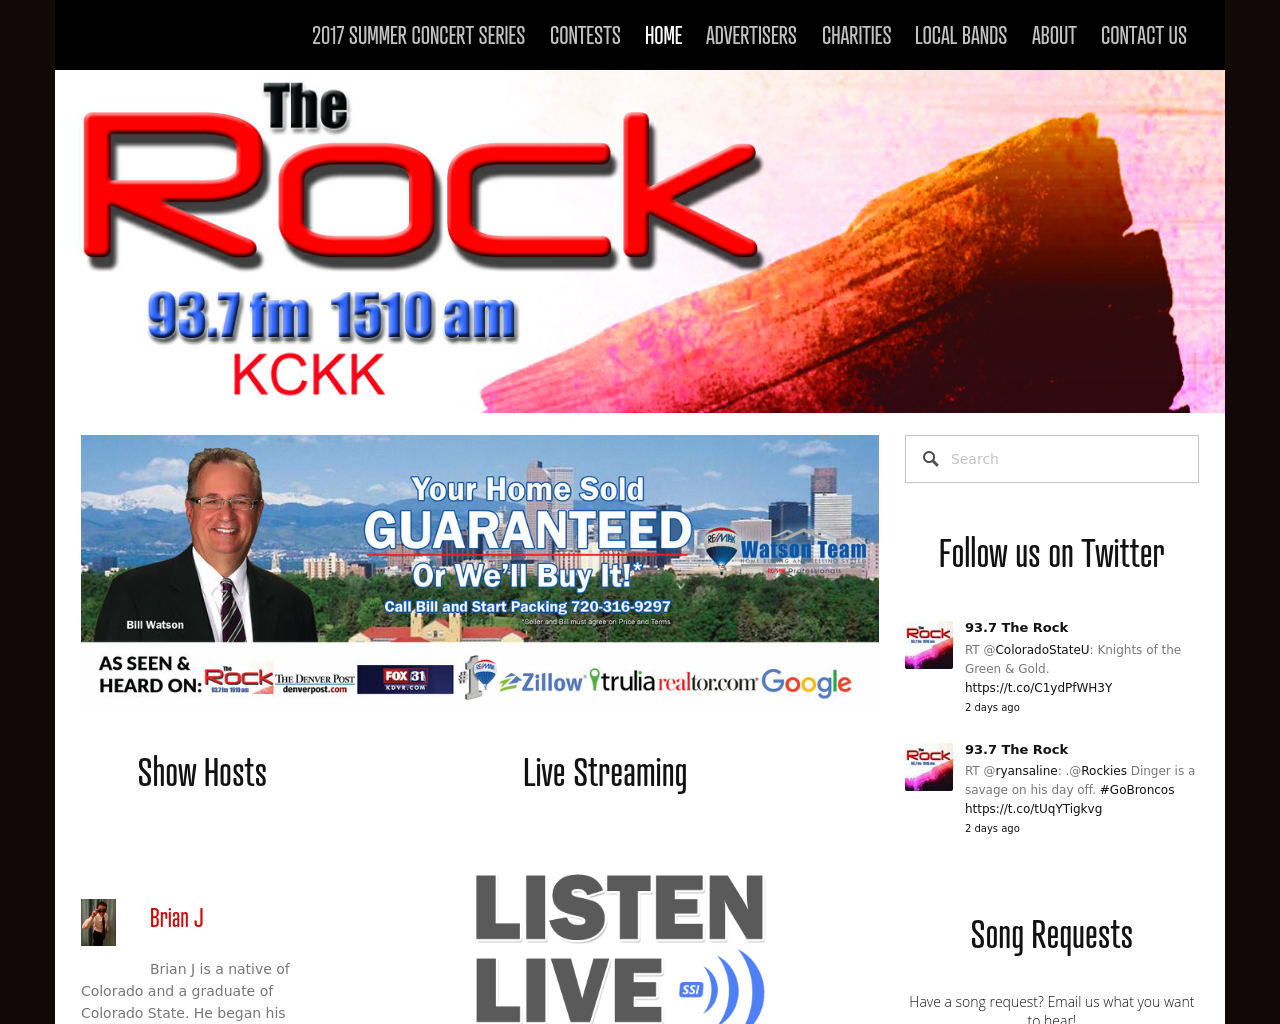 The-ROCK-Advertising-Reviews-Pricing